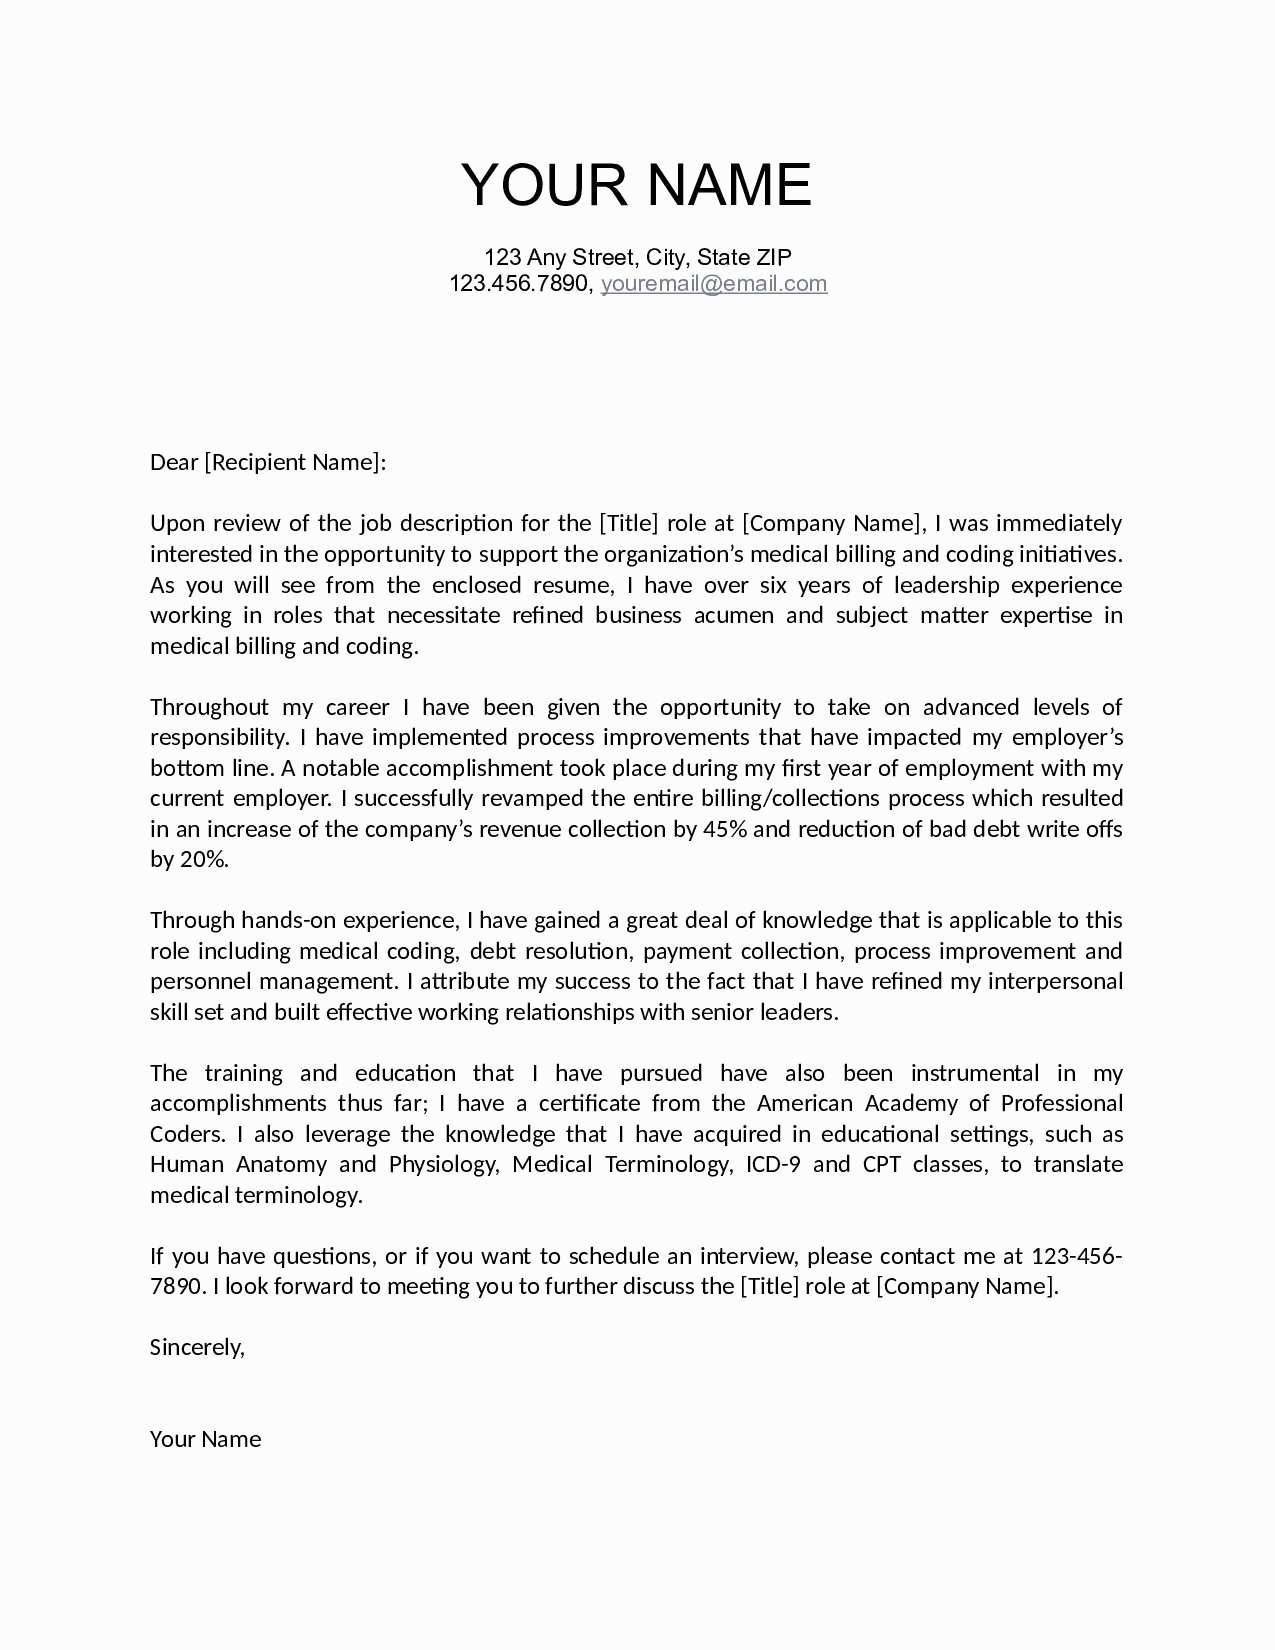 Letter Of Collaboration Template - Business Fer Letter Template Inspirationa Job Fer Letter Template